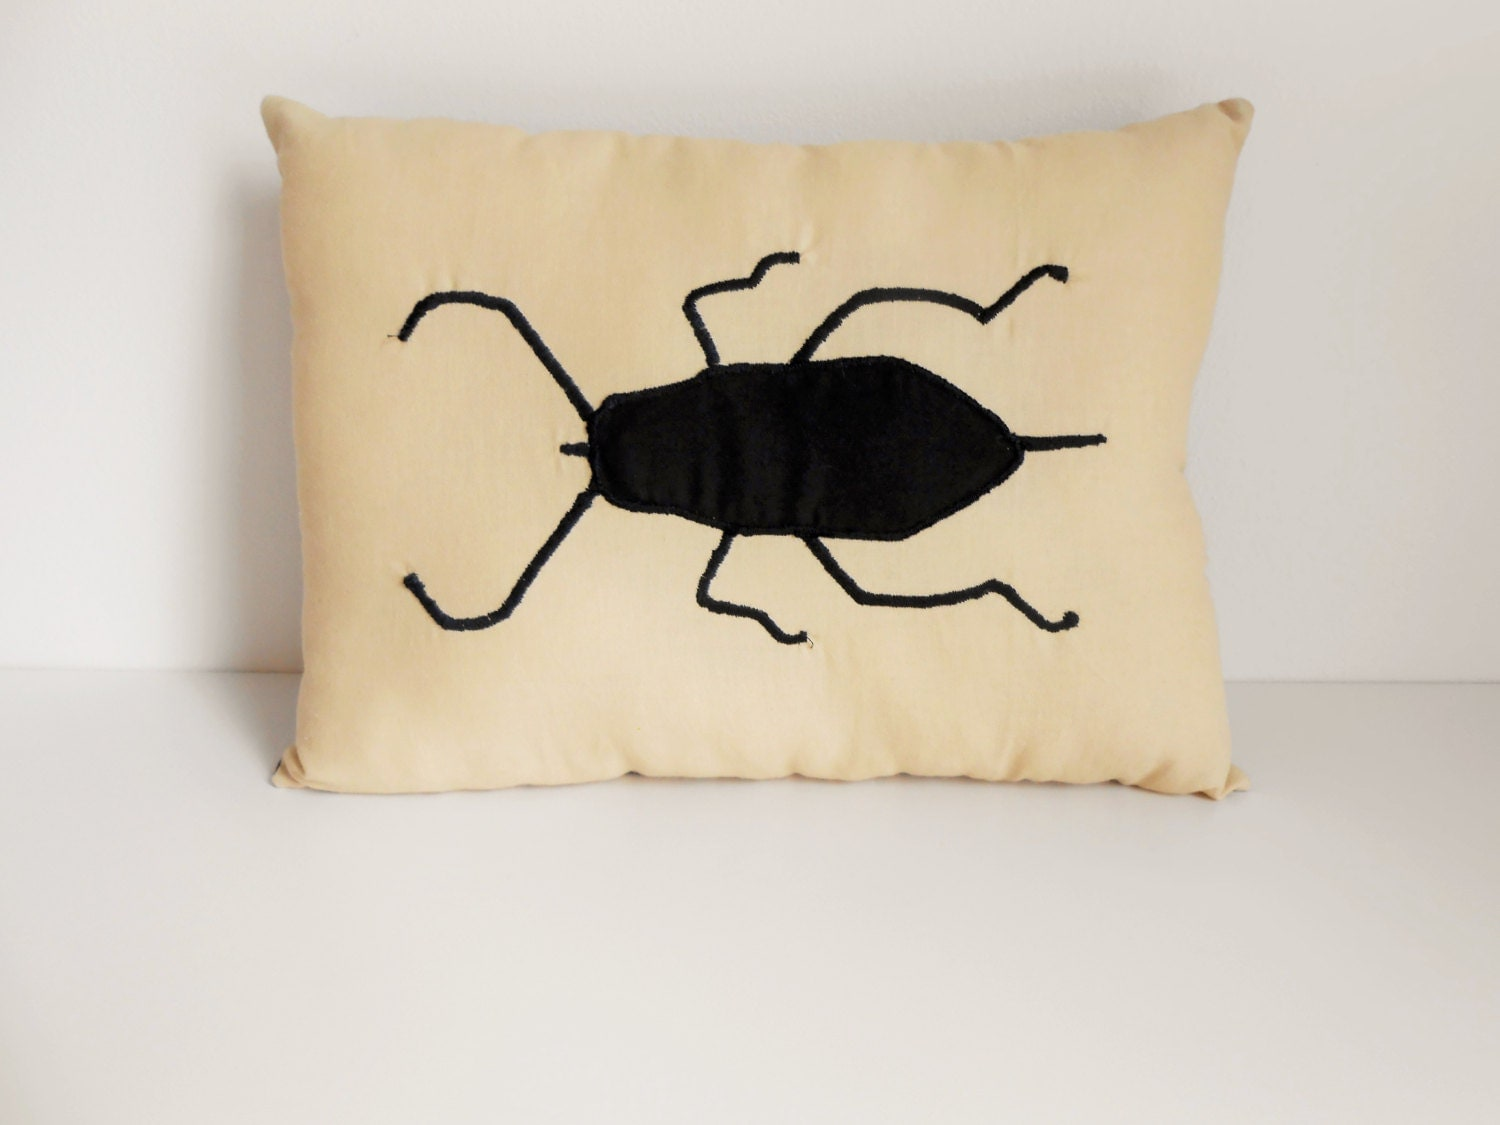 Throw Out Pillows Bed Bugs : Beetle Insect Throw Pillow Bug Decorative Cushion